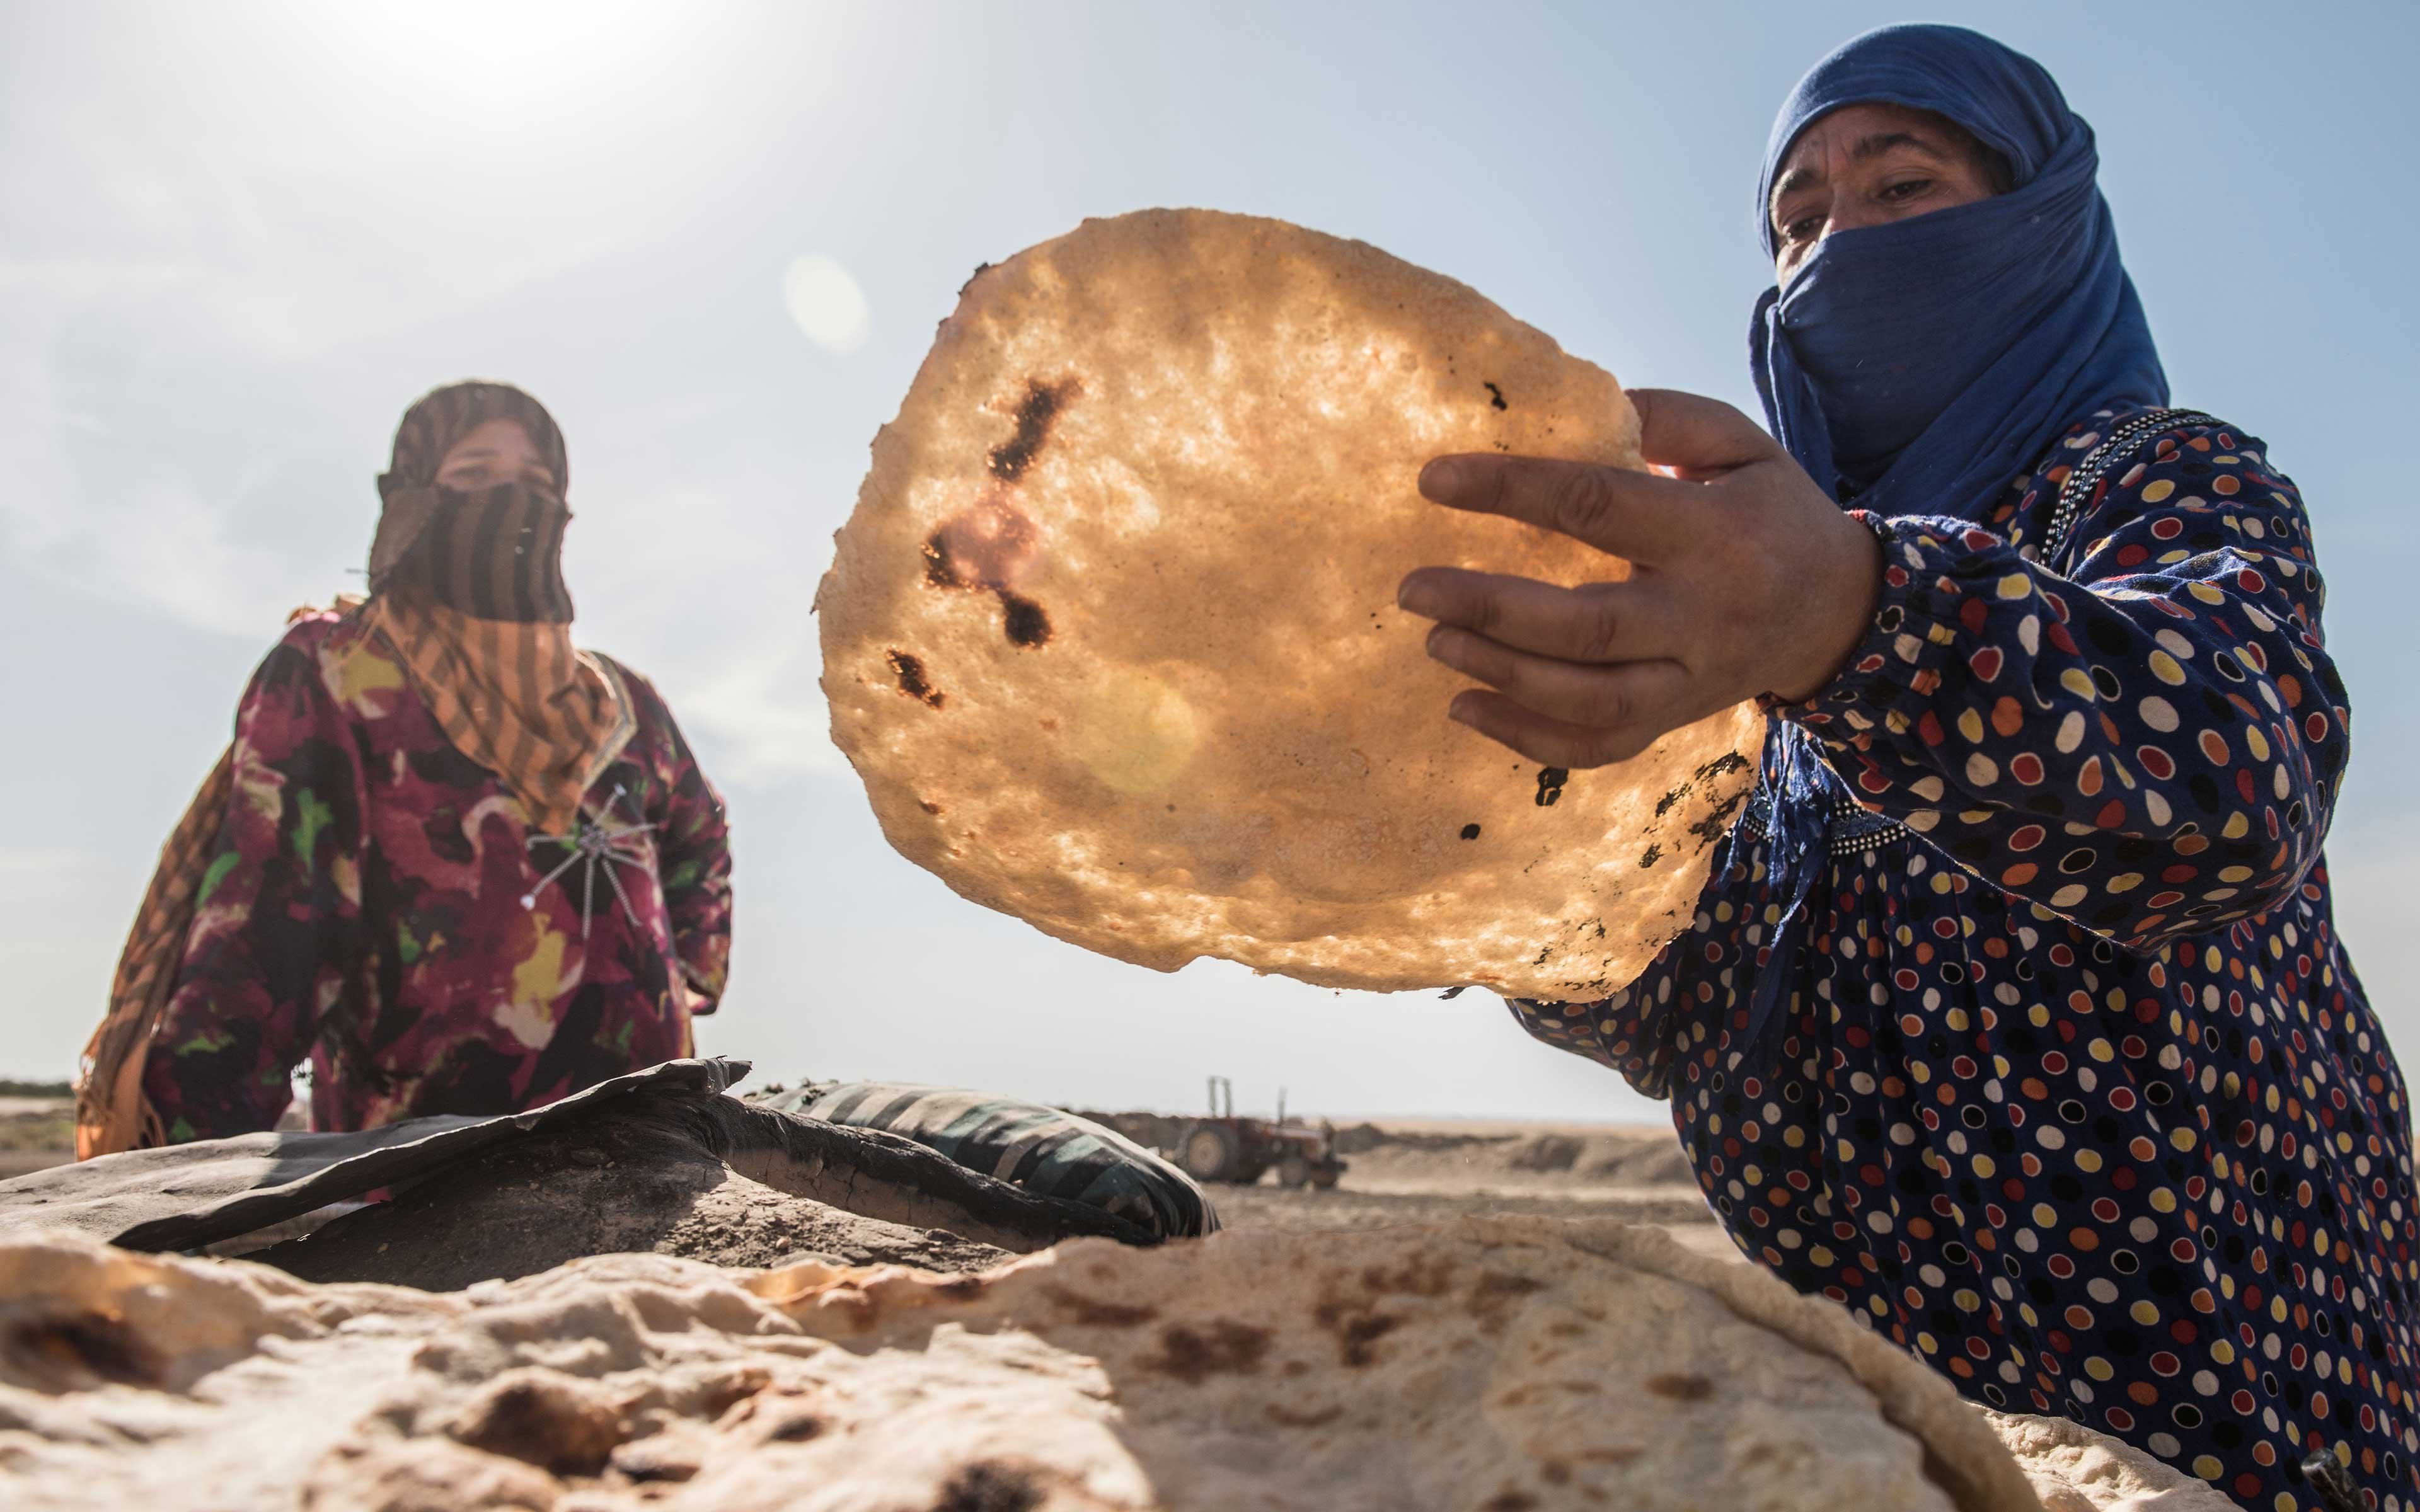 When ISIS occupied the area around the Iraqi town of Jalawla, many families were forced to flee. Some are now living in an abandoned farm building while trying to carry on with regular tasks like making bread. Oxfam has been supporting the families with clean water and sanitation facilities.